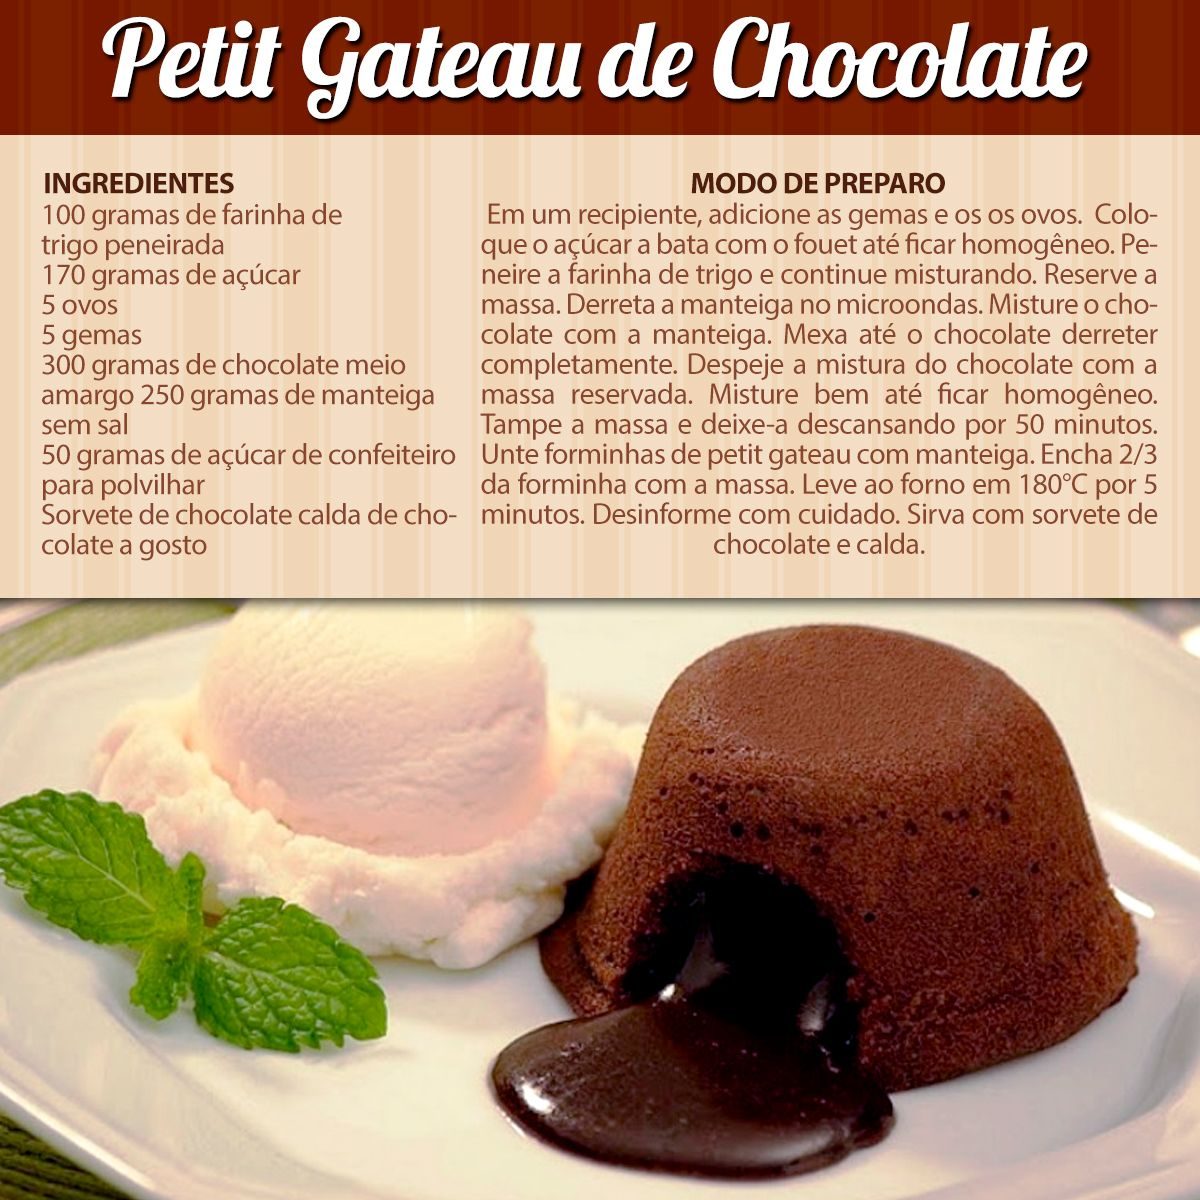 Photo of #PetitGateaudeChocolate Petit Gateau de Chocolate